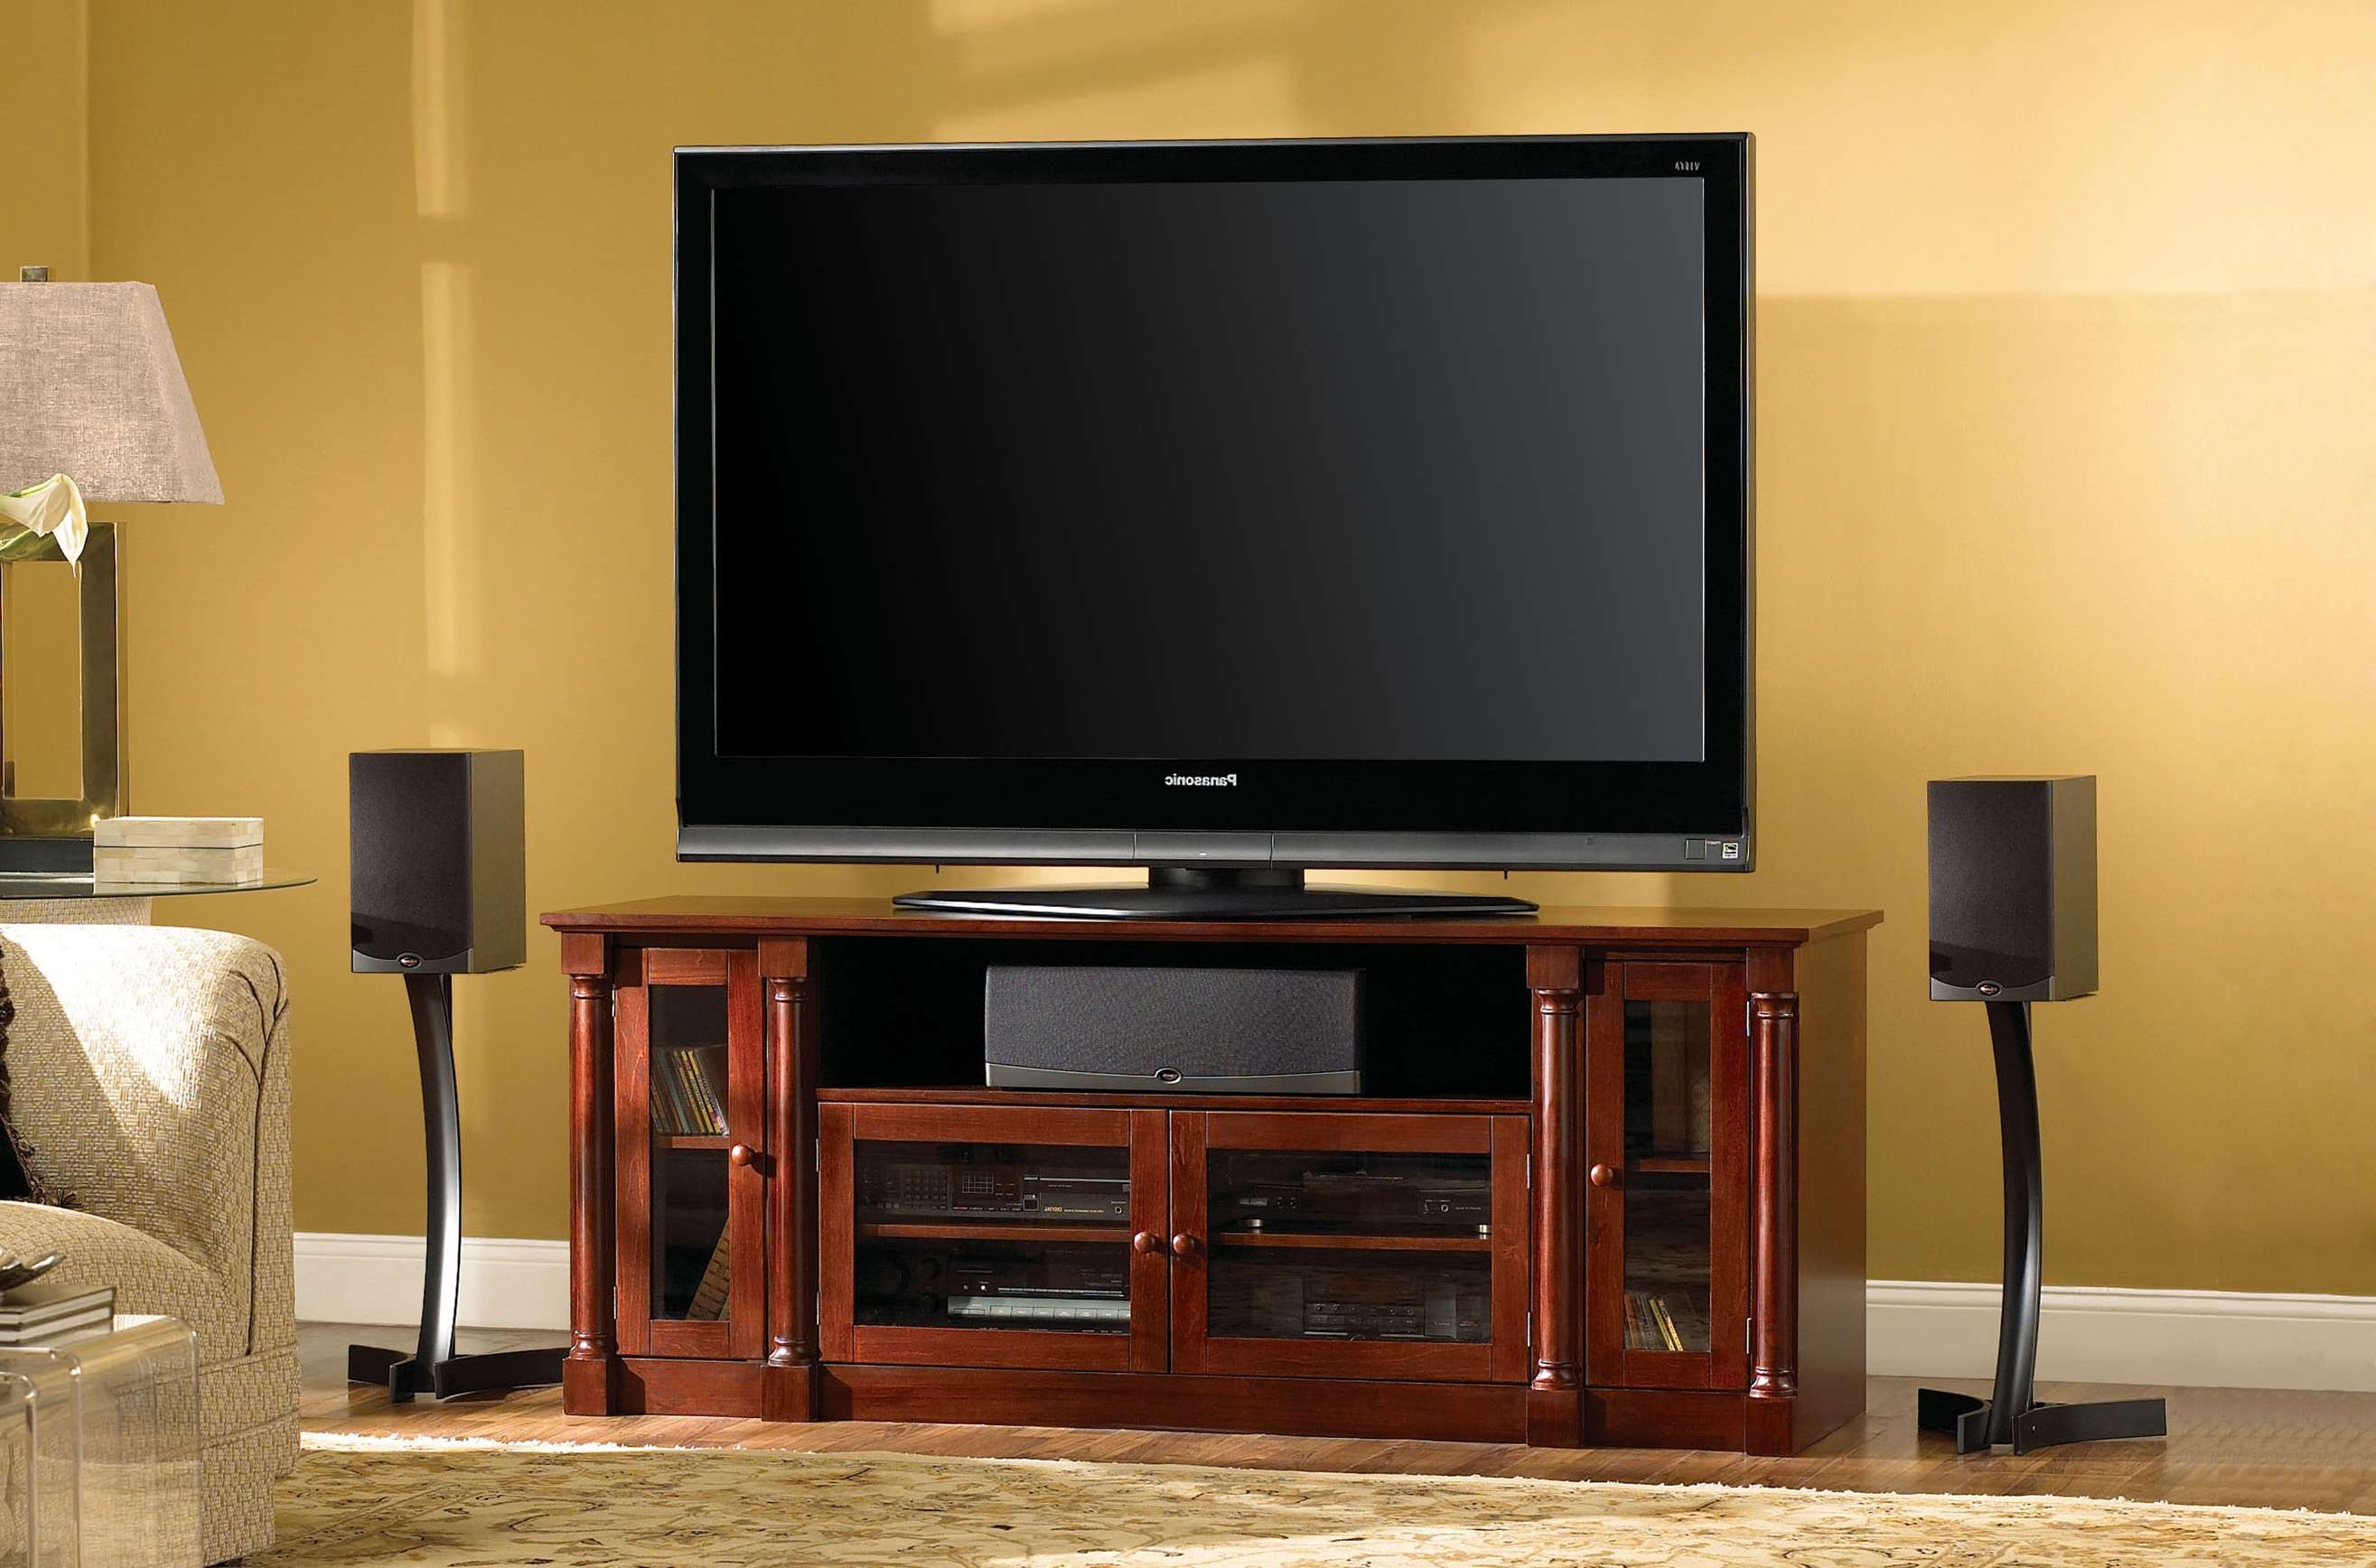 Fresh Cheap Cherry Wood Tv Stands Cabinets #17103 With Regard To Traditional Tv Cabinets (View 4 of 20)